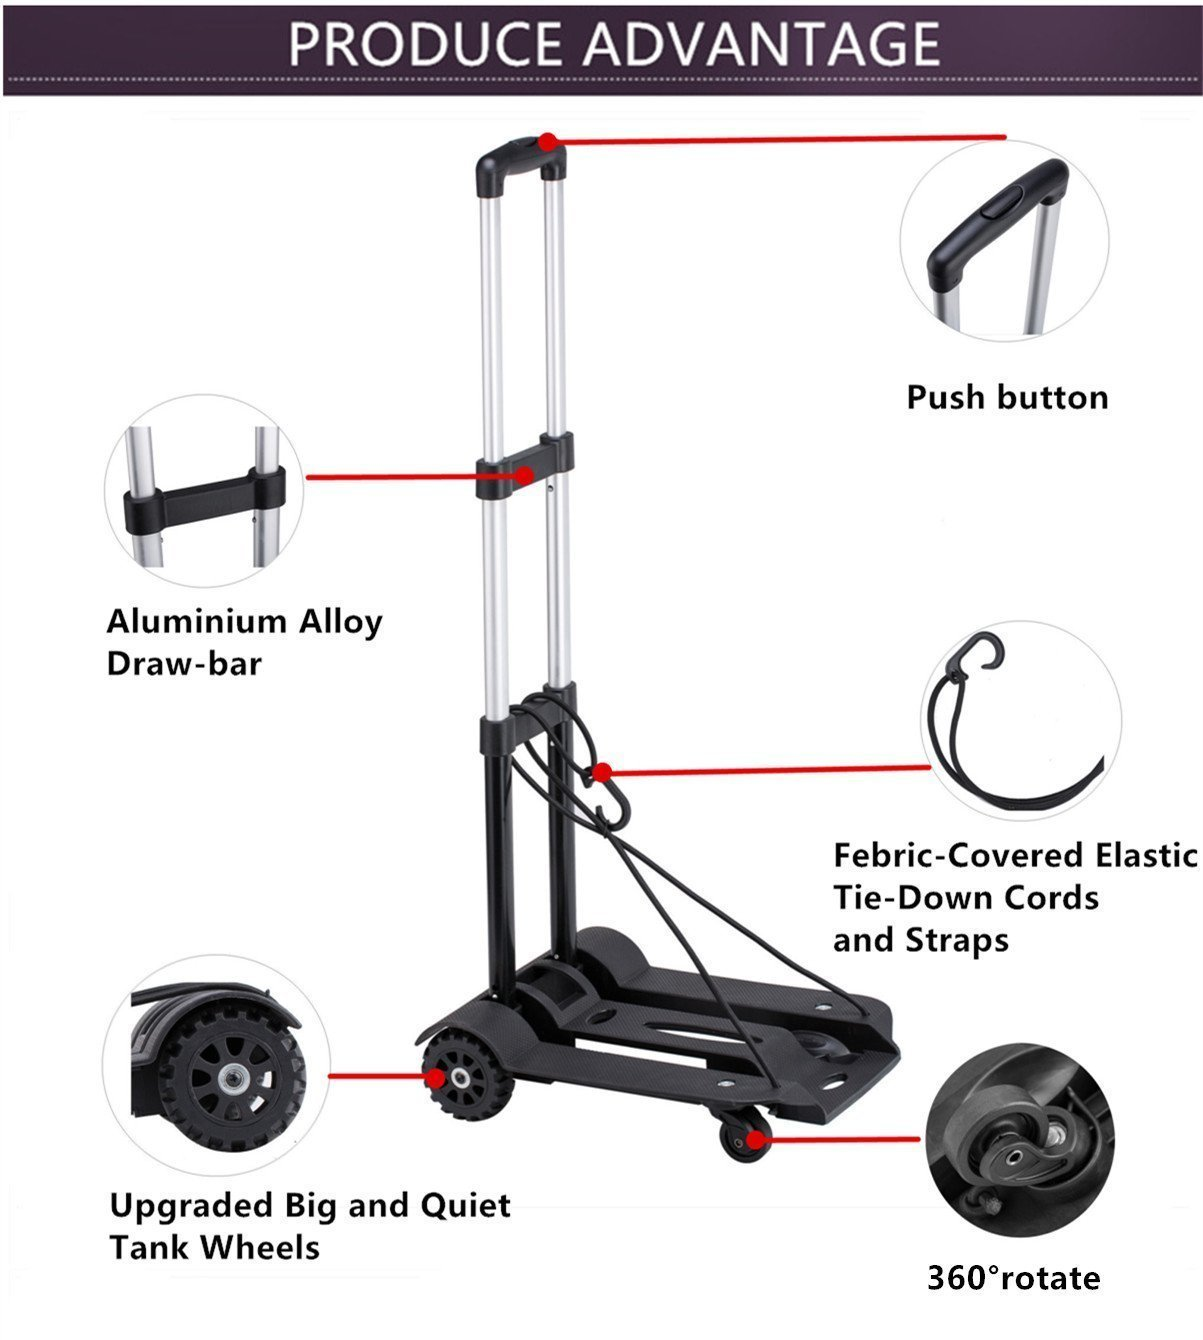 Folding Hand Truck, 75 Kg/165 lbs Heavy Duty Solid Construction Utility Cart Compact and Lightweight for Luggage, Personal, Travel, Auto, Moving and Office Use - Portable Fold Up Dolly(4 wheel-roate) by ROYI (Image #4)